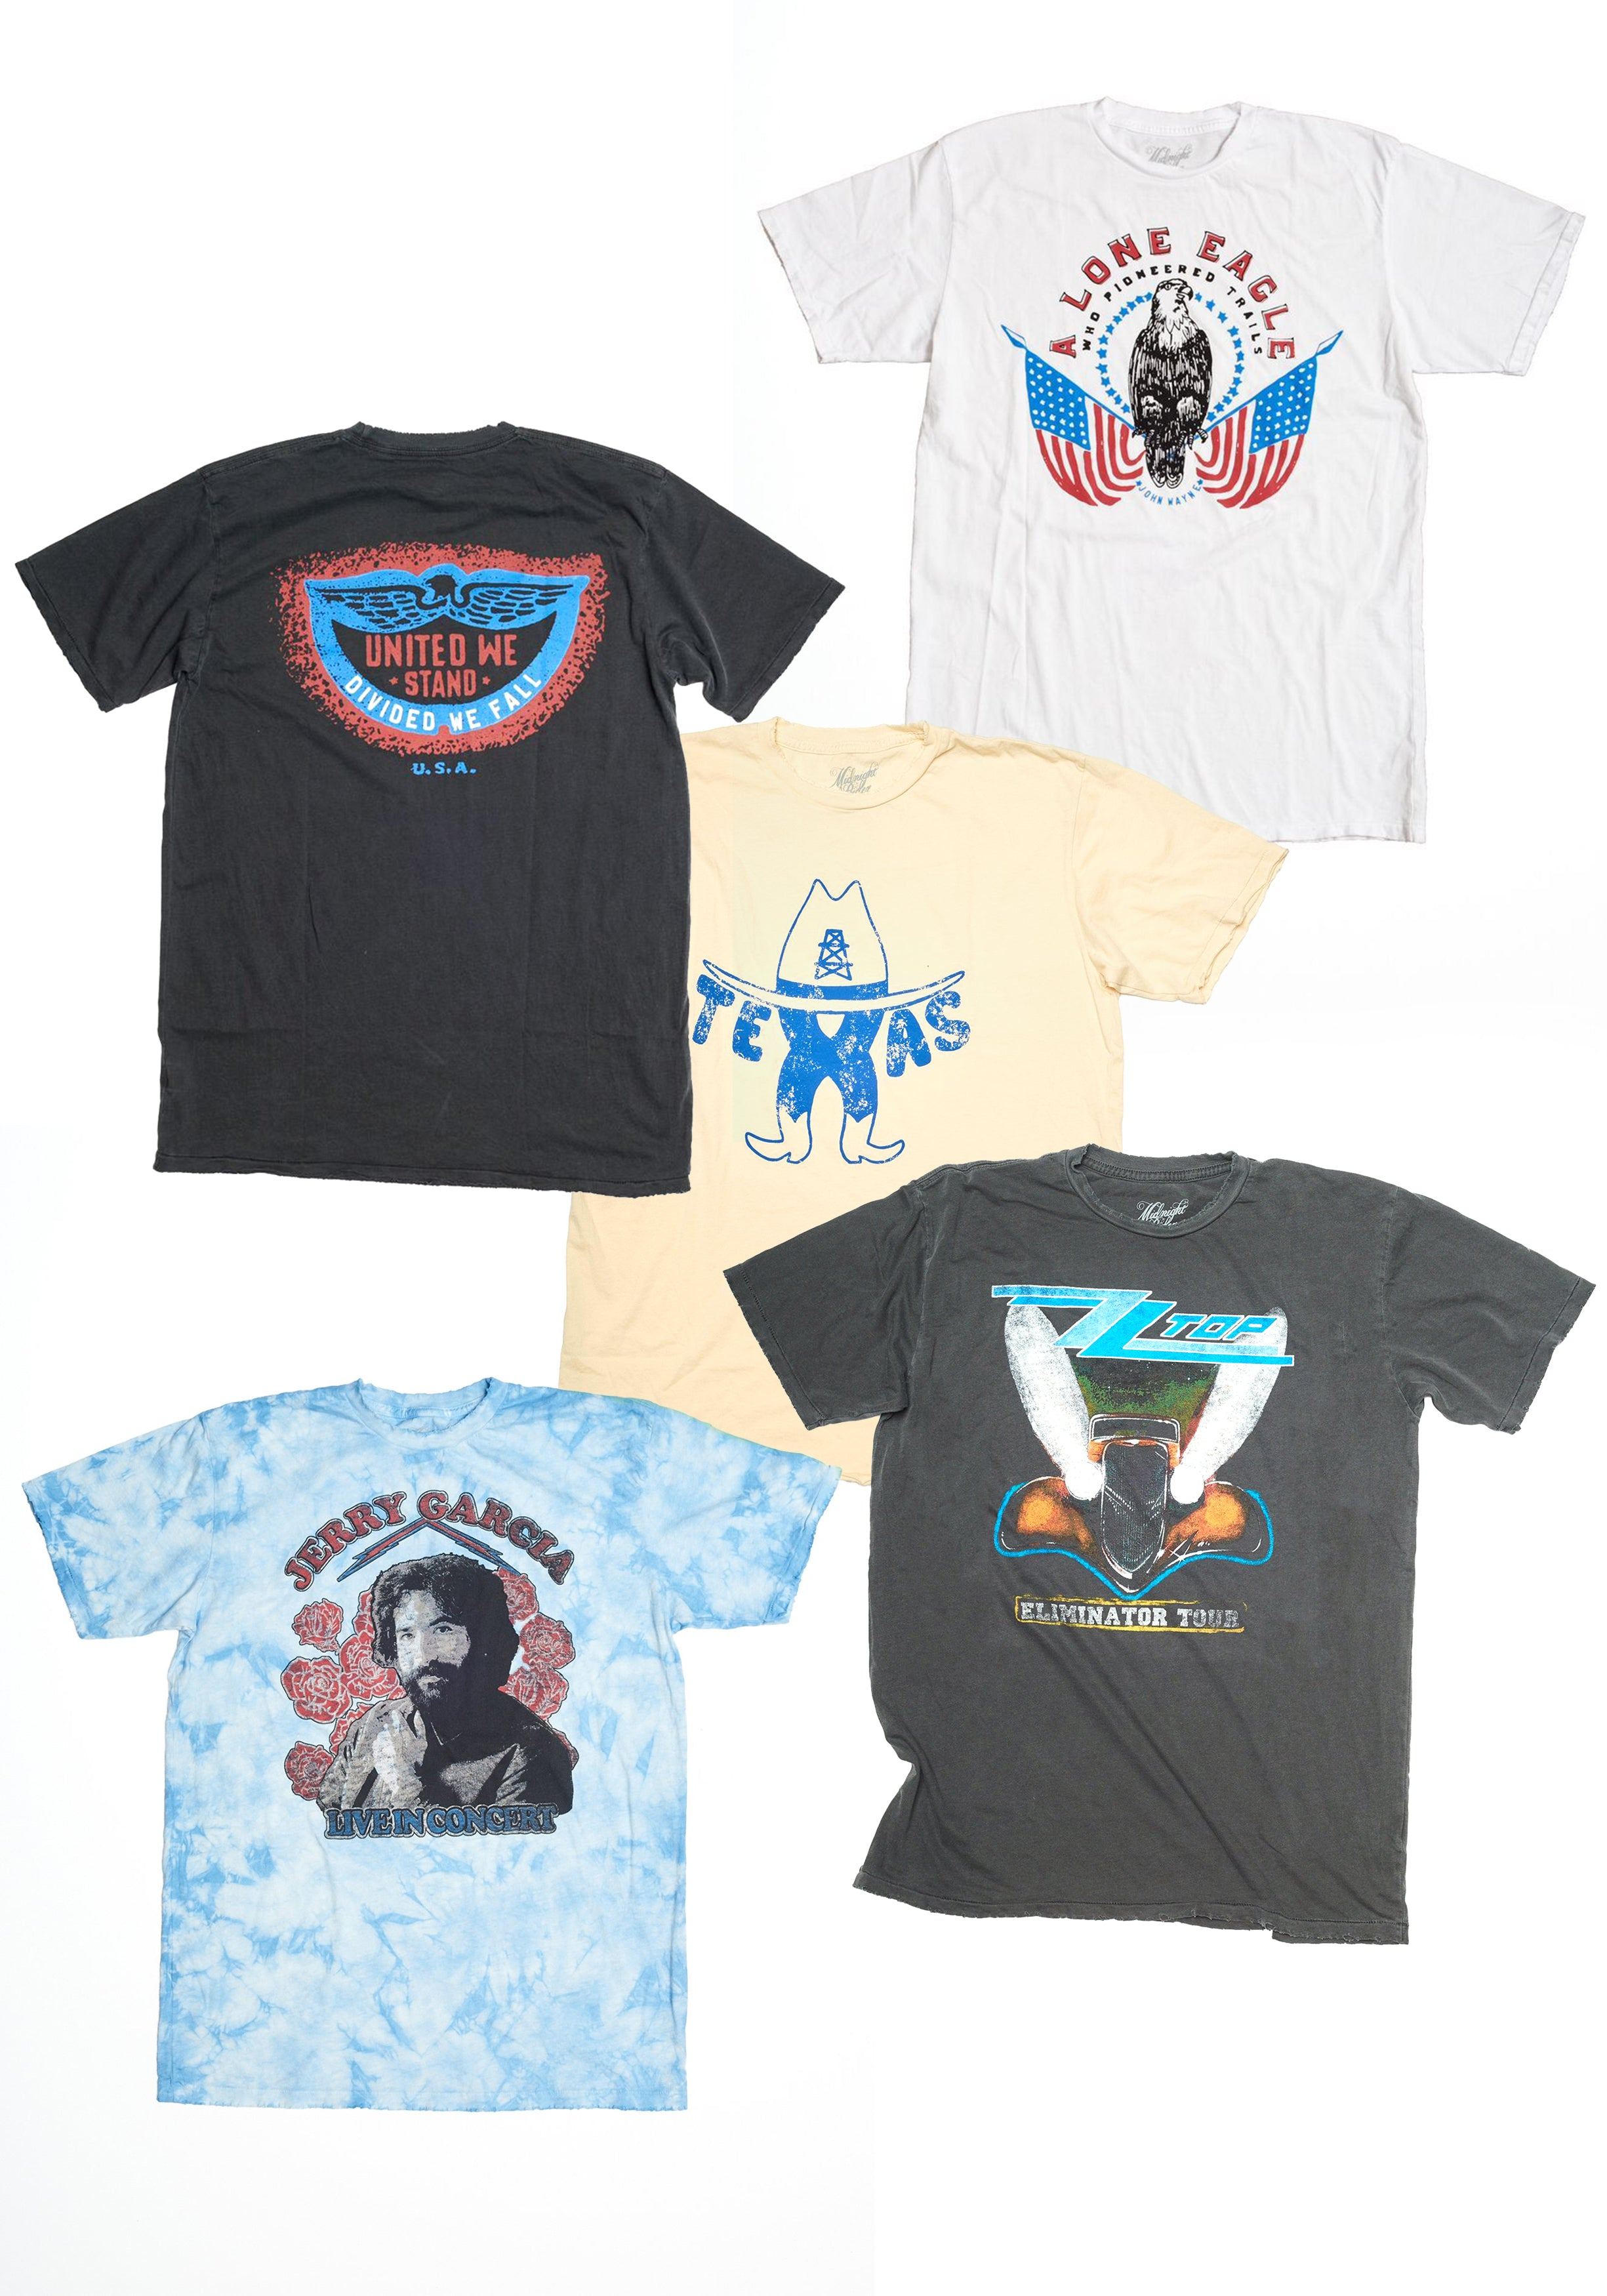 Midnight Rider Blind Bargain Bin - Men's Variety Pack - Men's Tee Shirt - Midnight Rider